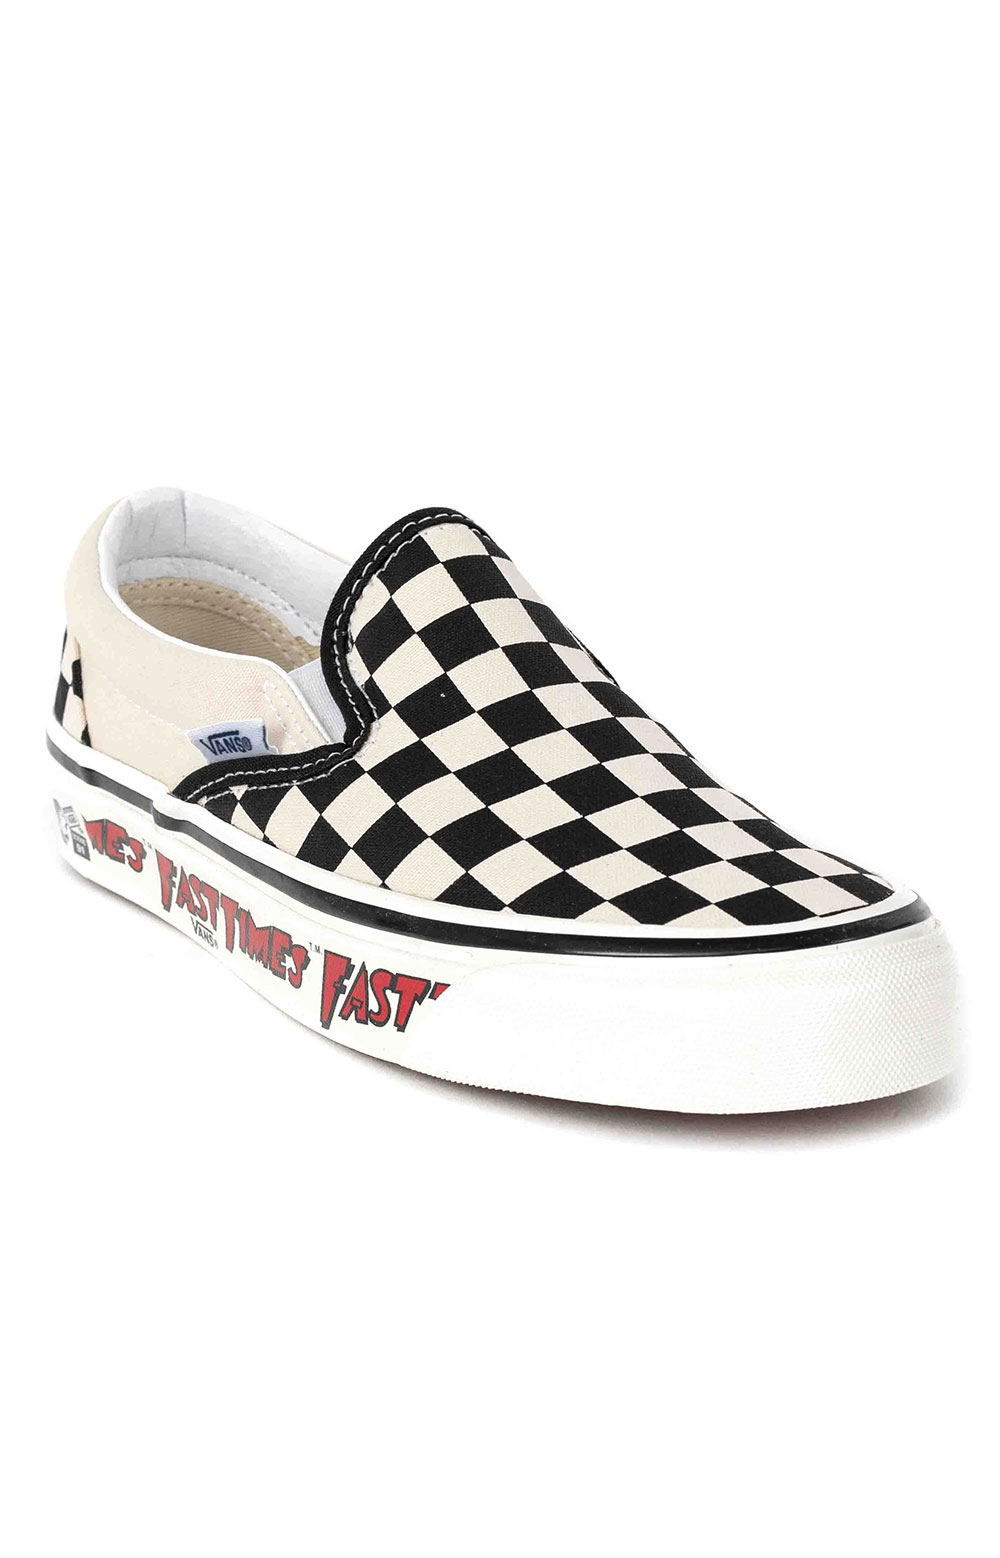 (JEXWVP) Anaheim Factory Classic Slip-On 98 DX Shoes - OG Fast Times  3